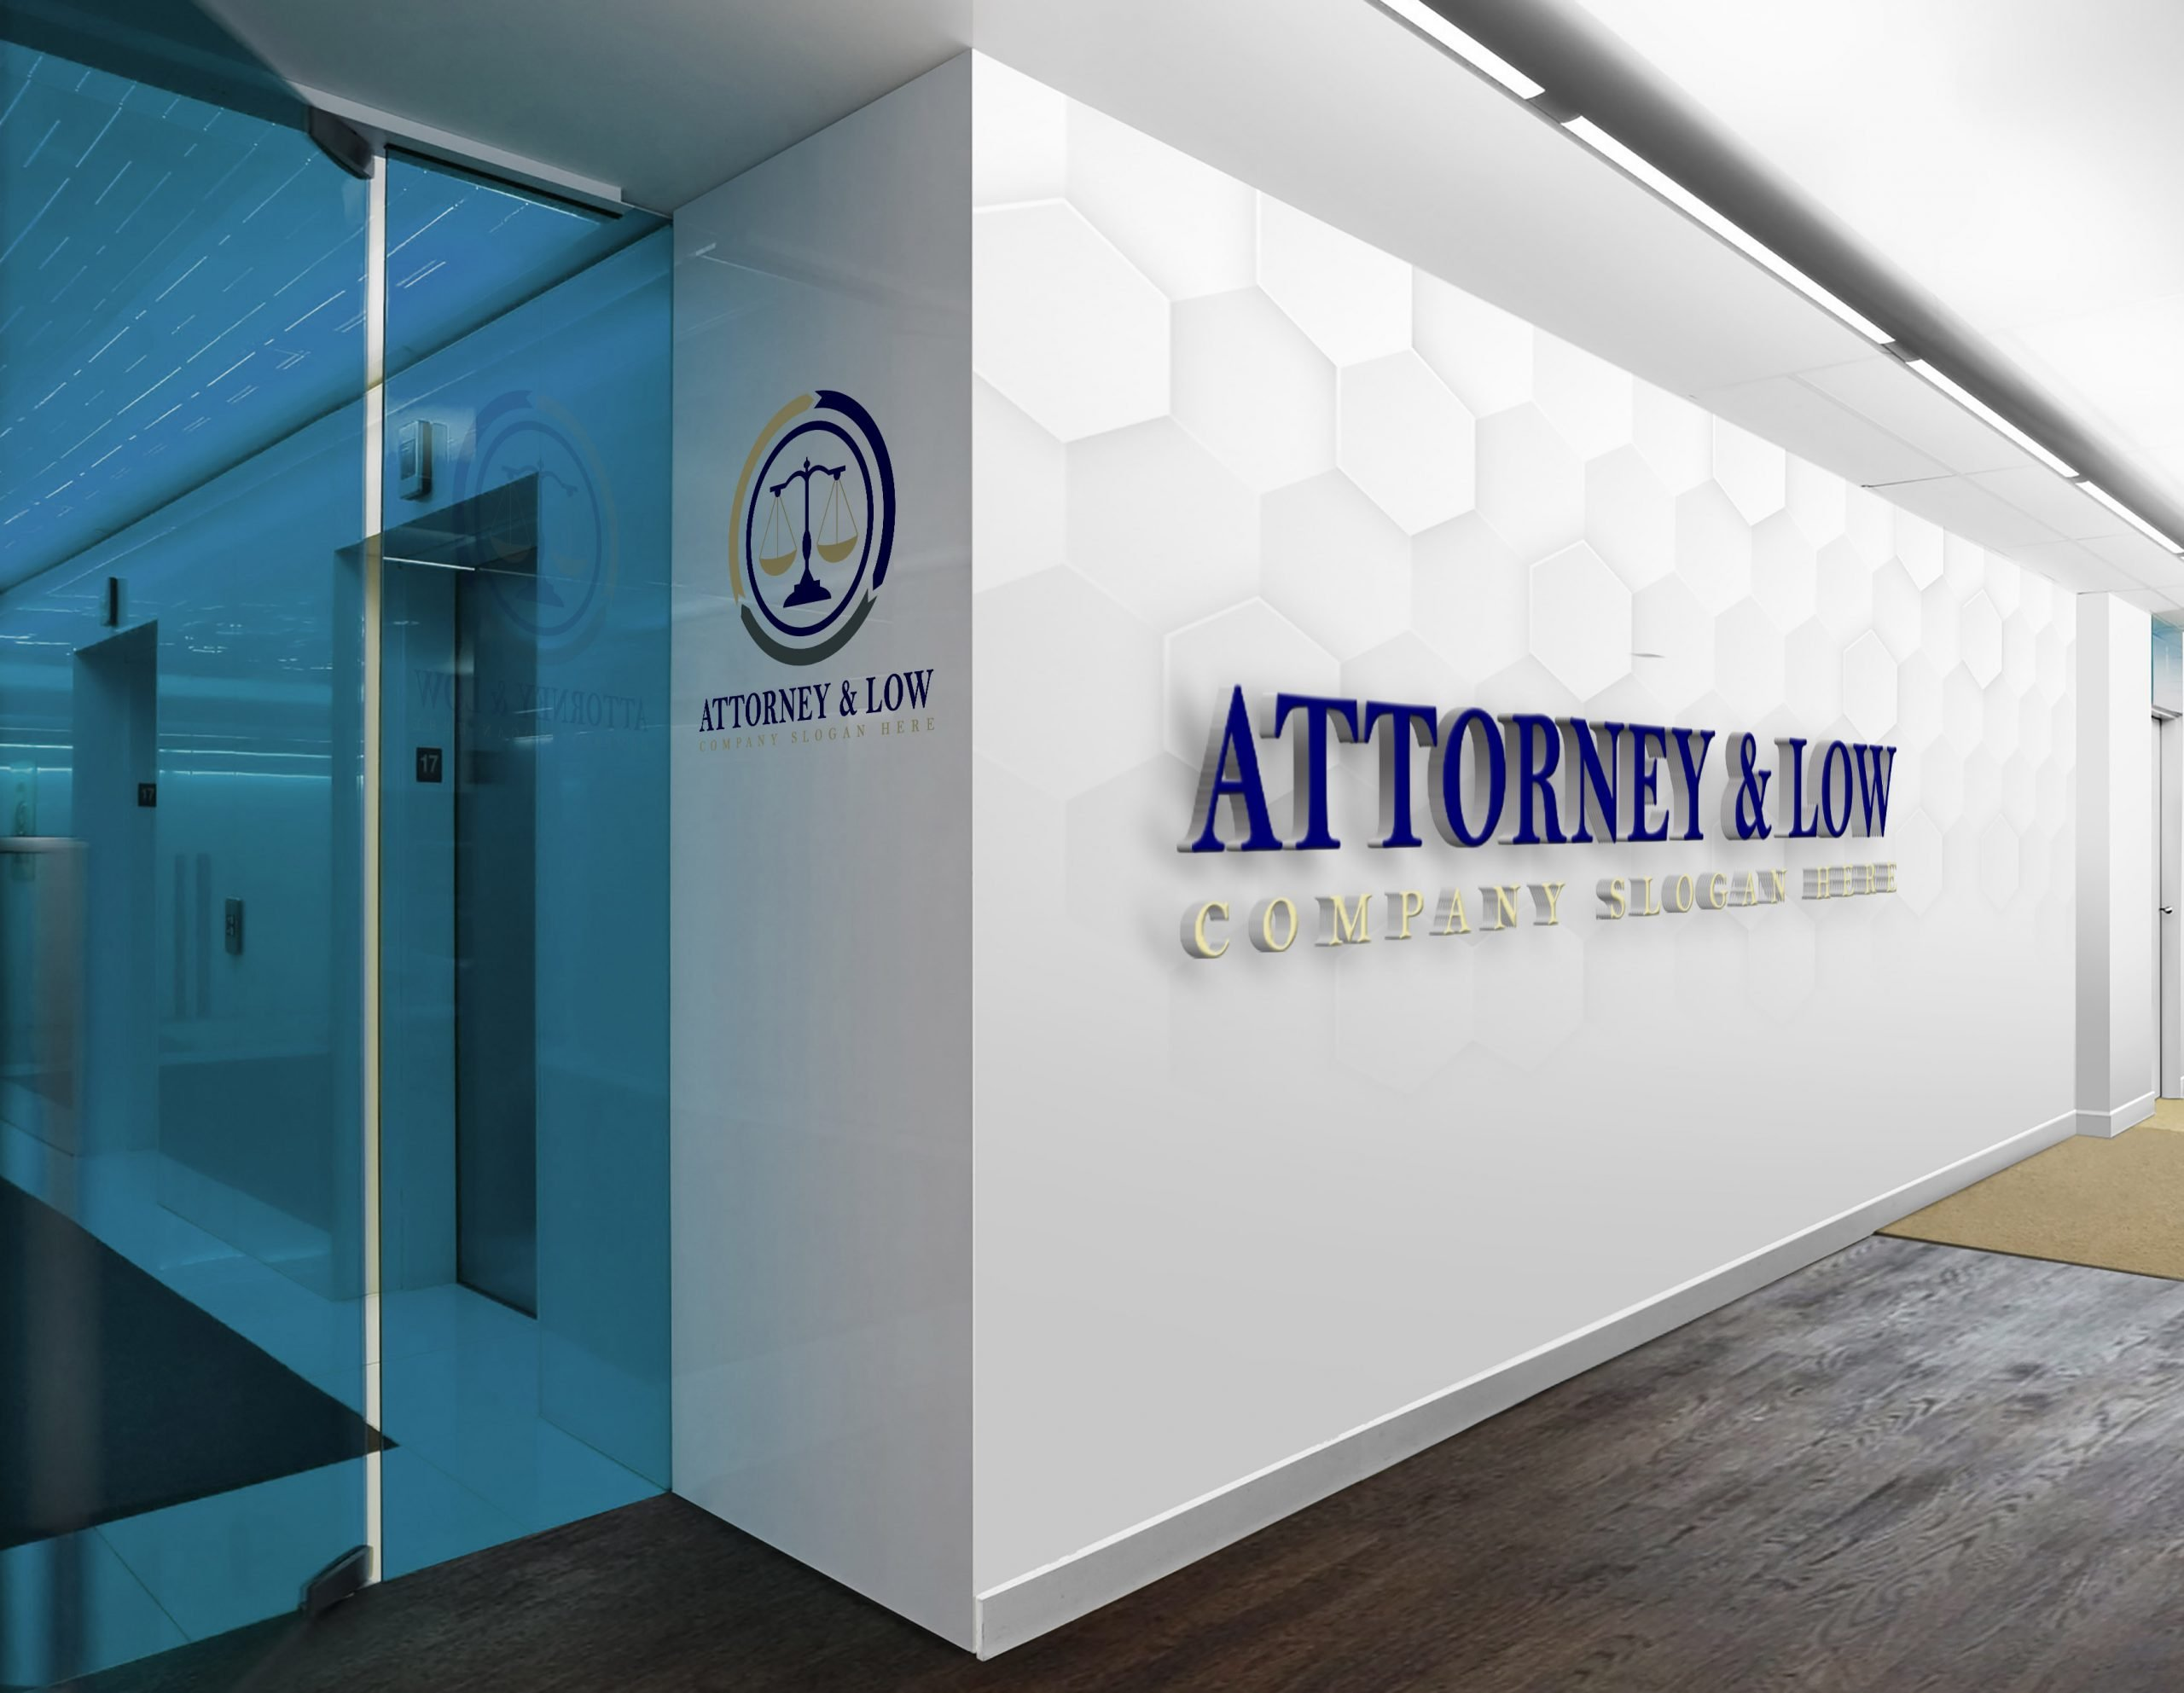 Attorney & Law logo design on office wall